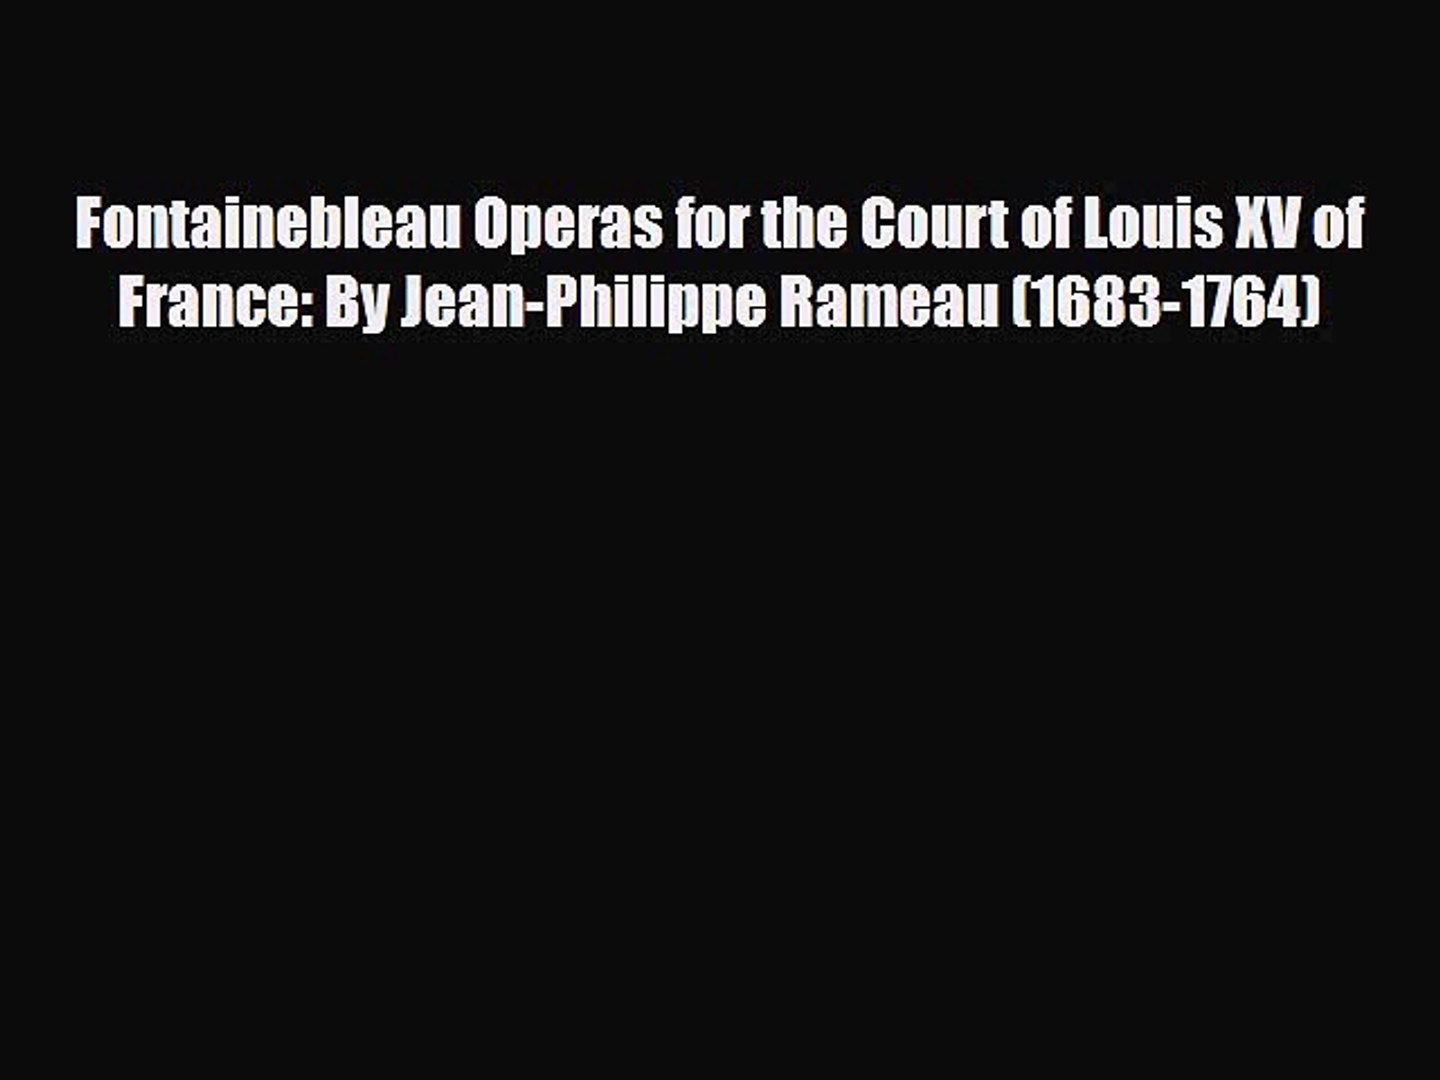 Chaise Louis Xv Cannée Merisier [pdf download] fontainebleau operas for the court of louis xv of france: jean-philippe rameau